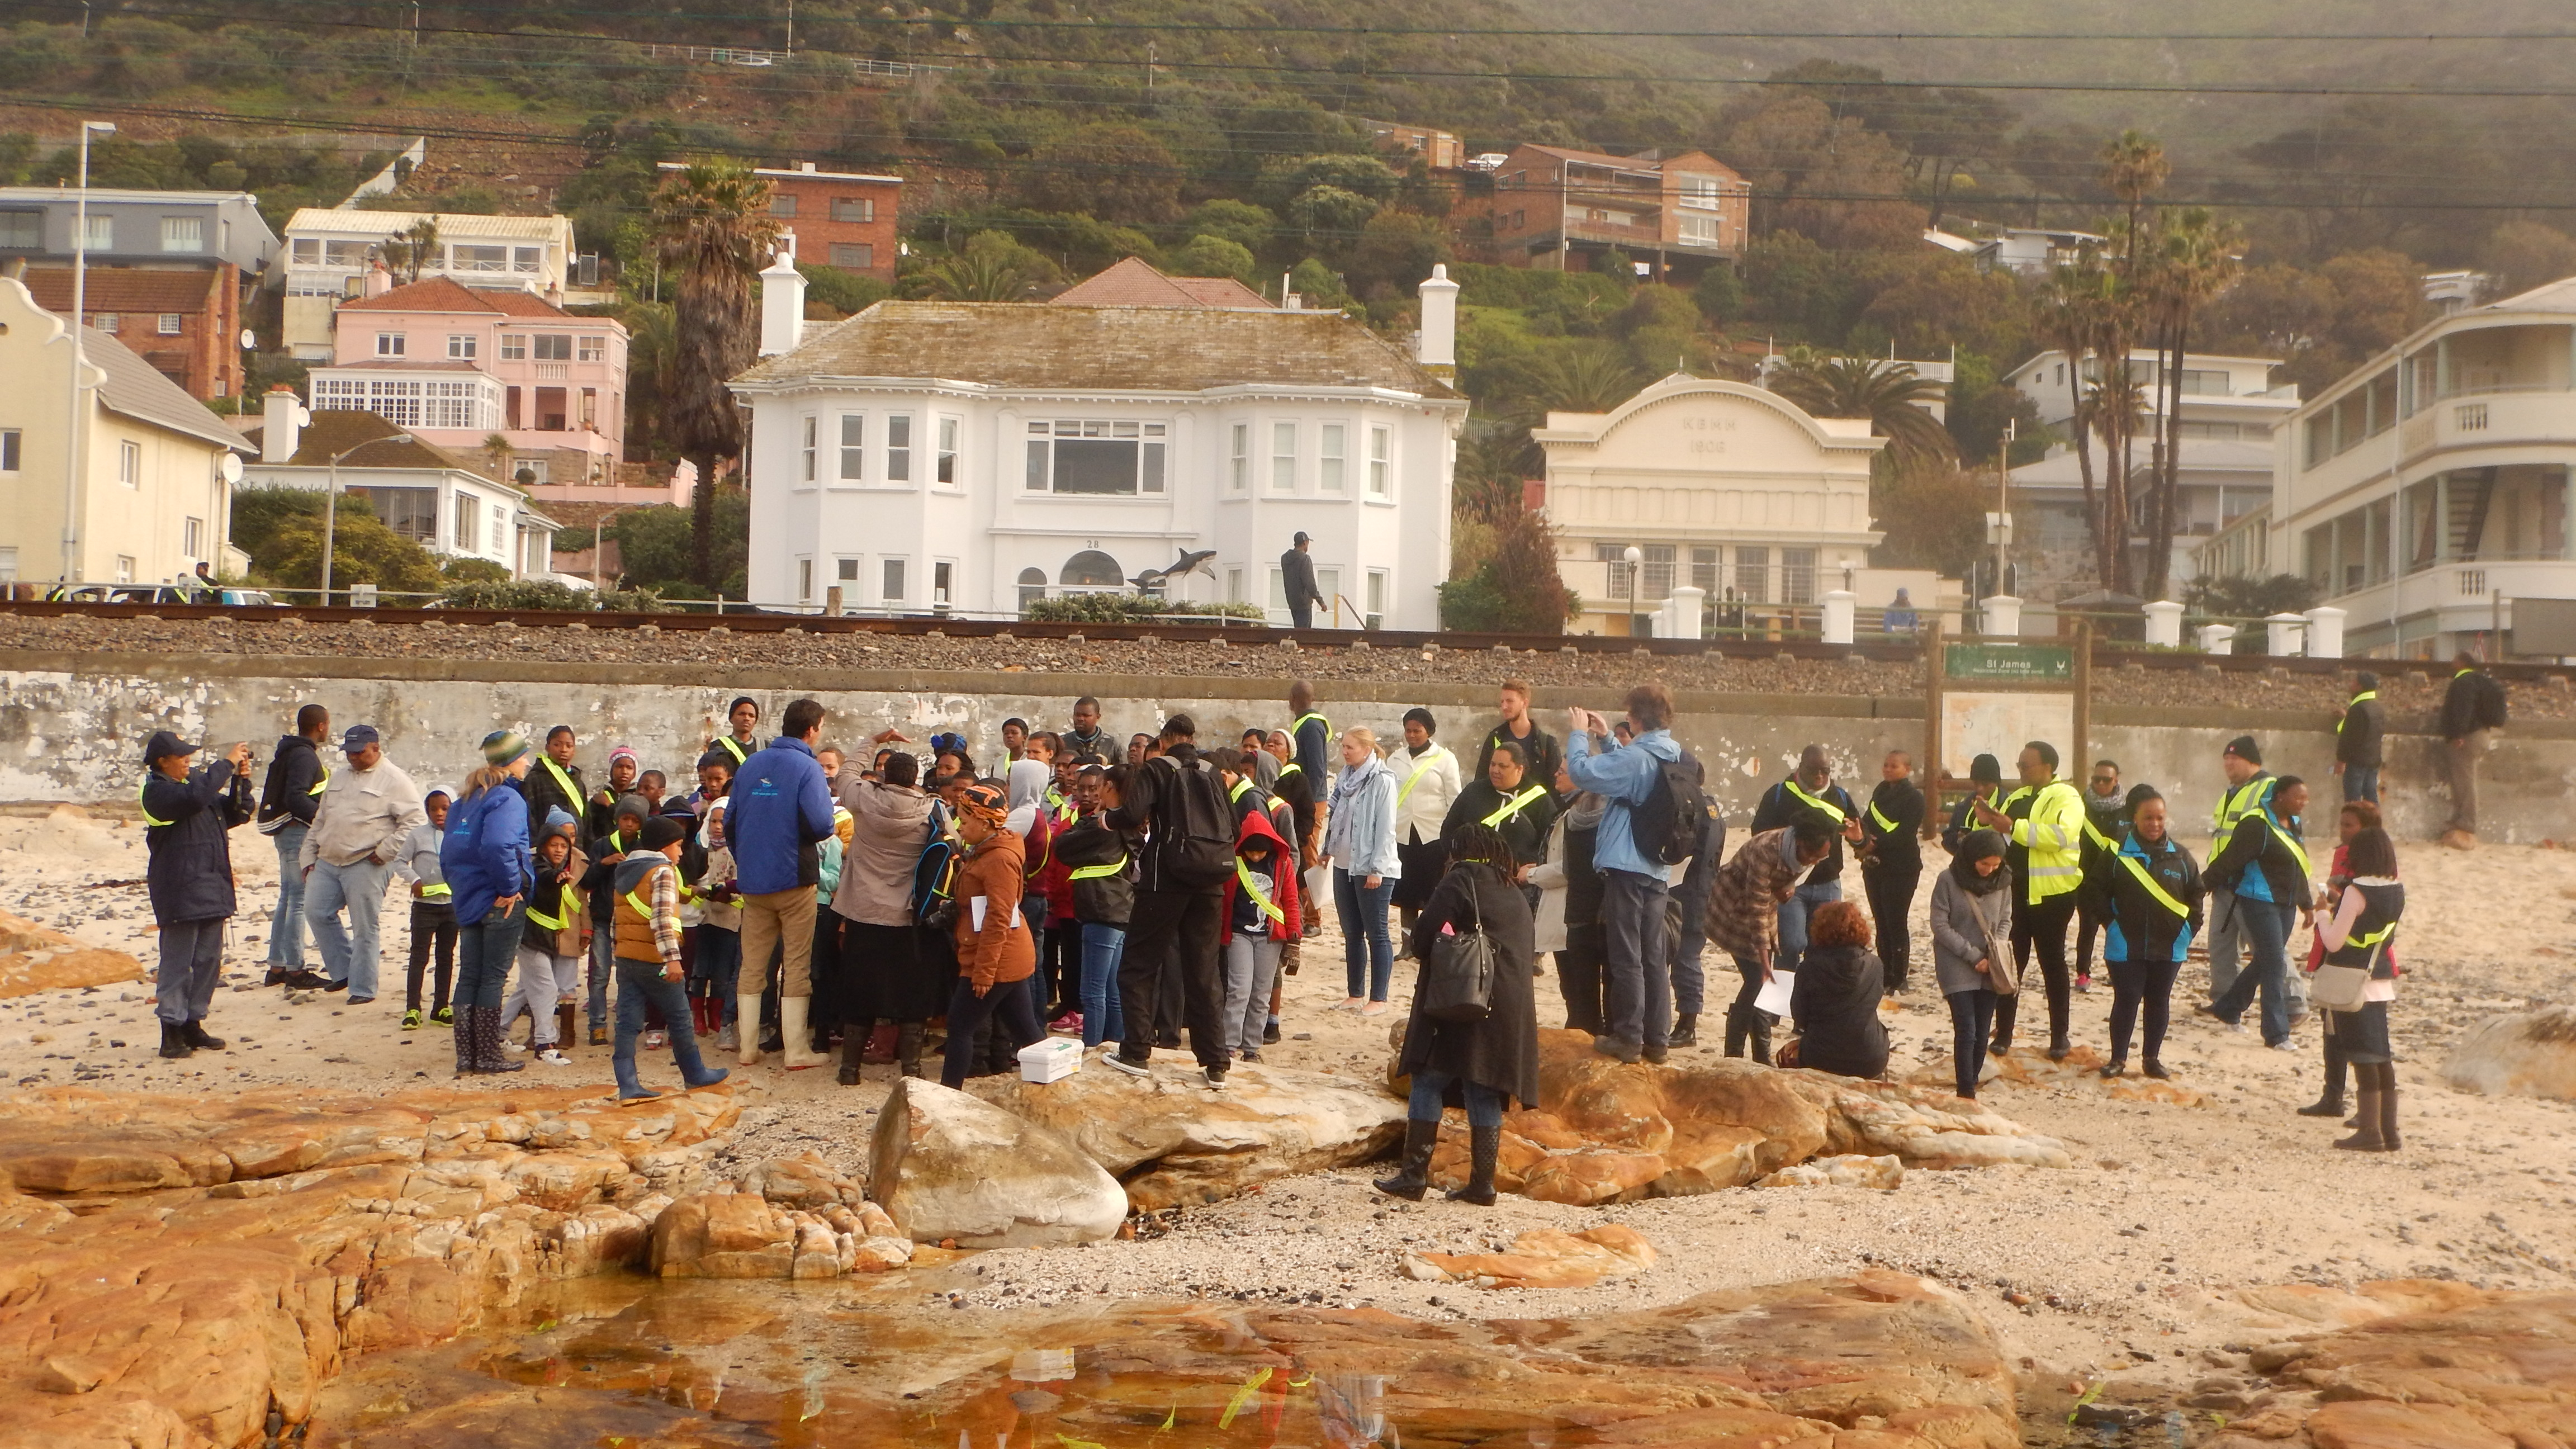 The group hit the beach to explore rock pools